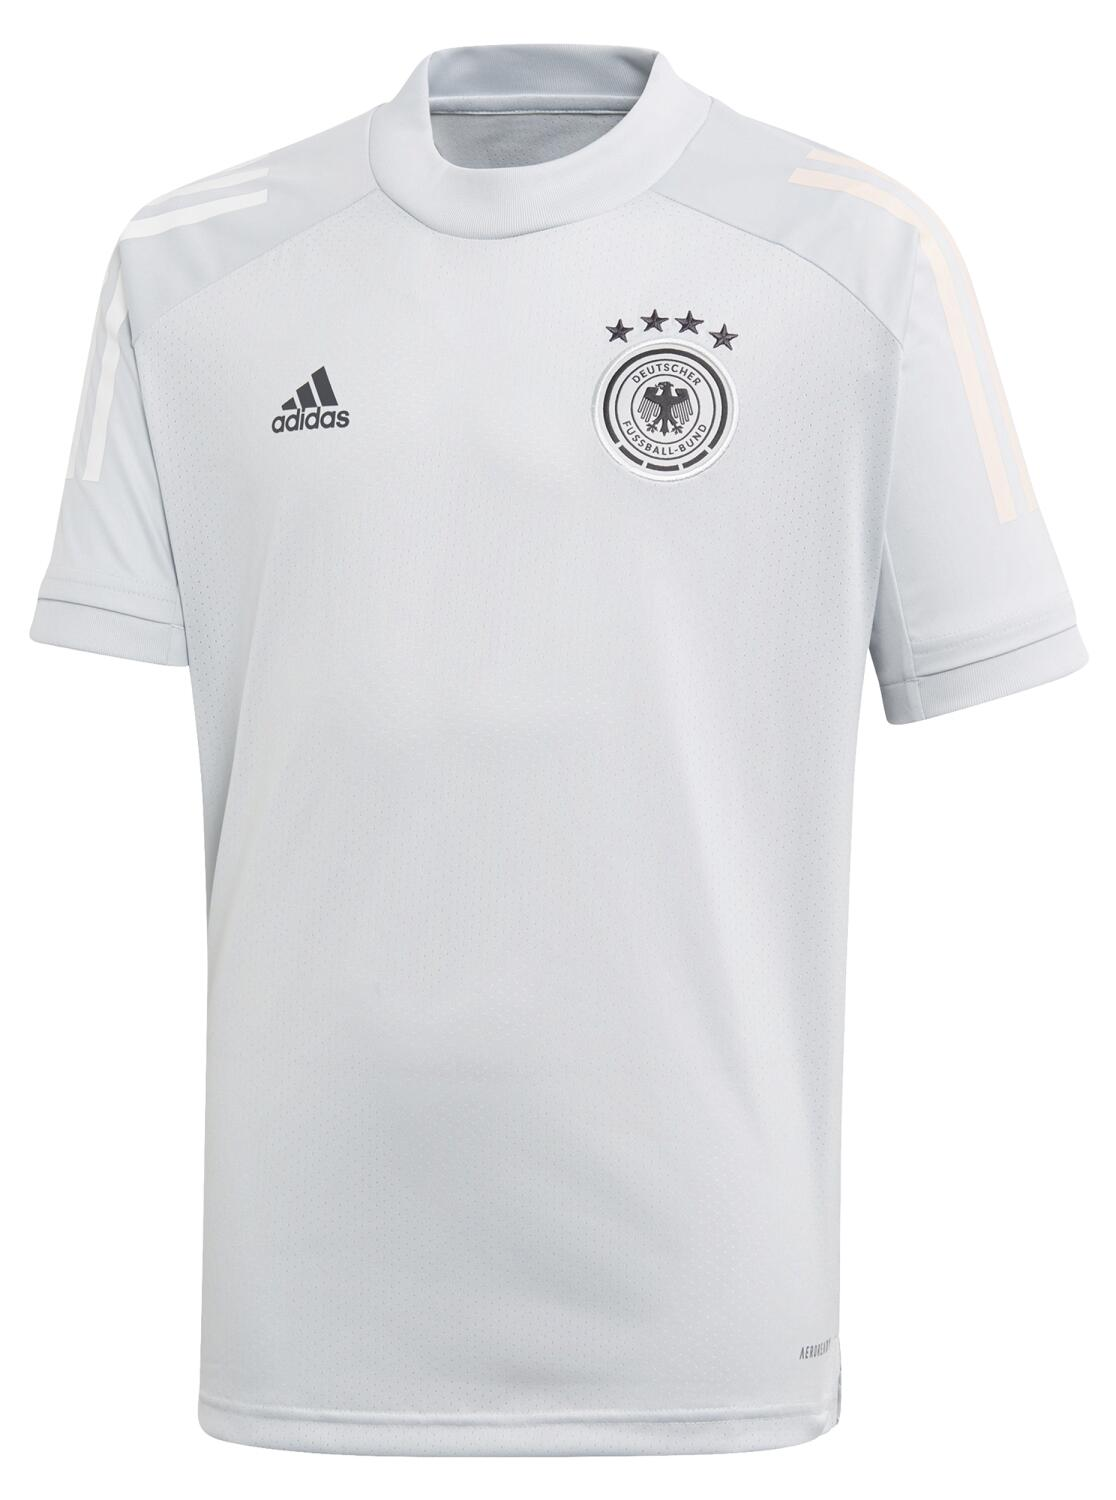 Boyssportmode - adidas DFB Trainingstrikot Kinder (Größe 164, clear grey) - Onlineshop Sportolino